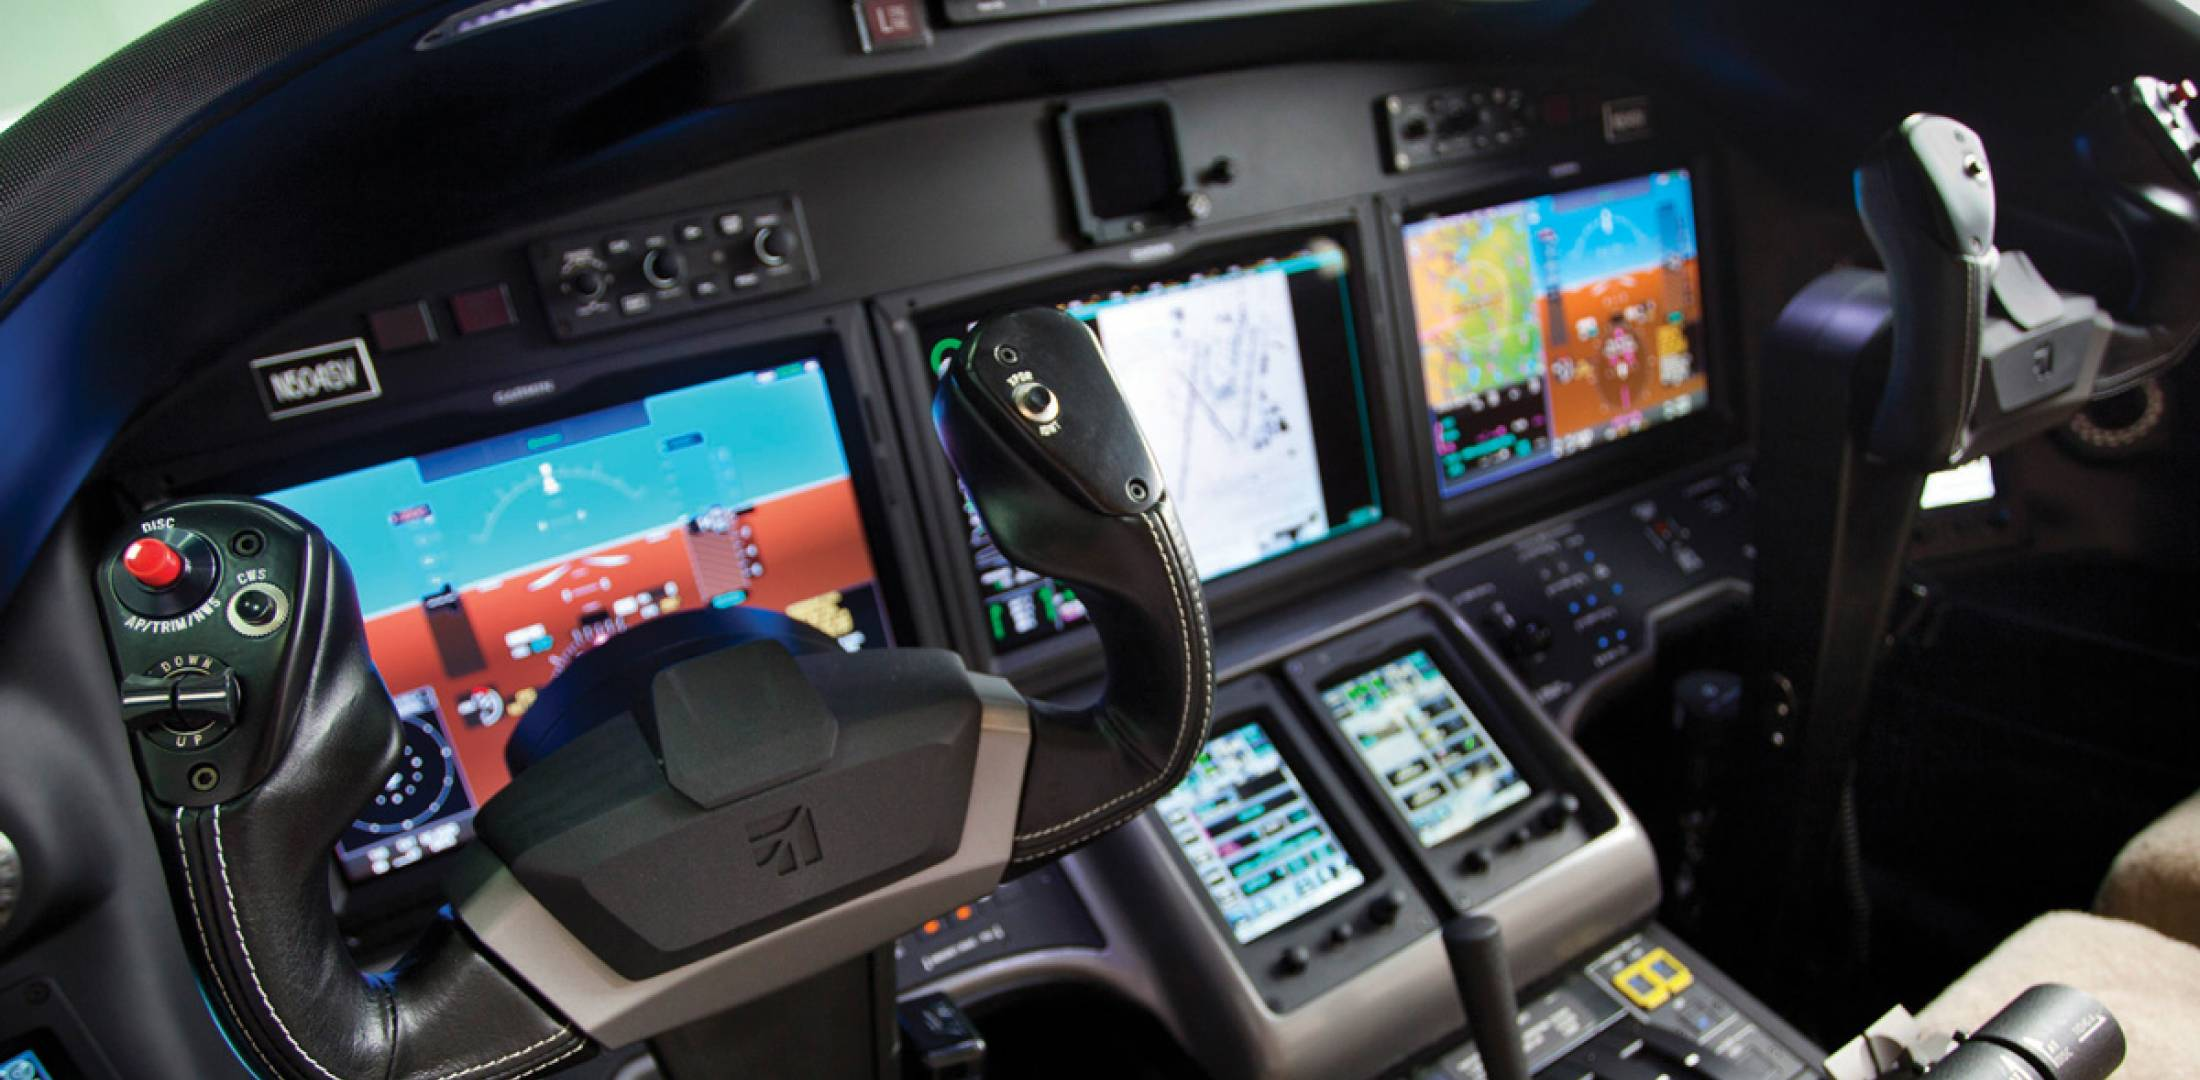 The Sovereign cockpit was designed to be an integrated whole with the cabin and features Cessna's Intrinzic flight deck (based on a Garmin G5000 system) and leather and stainless steel trim.